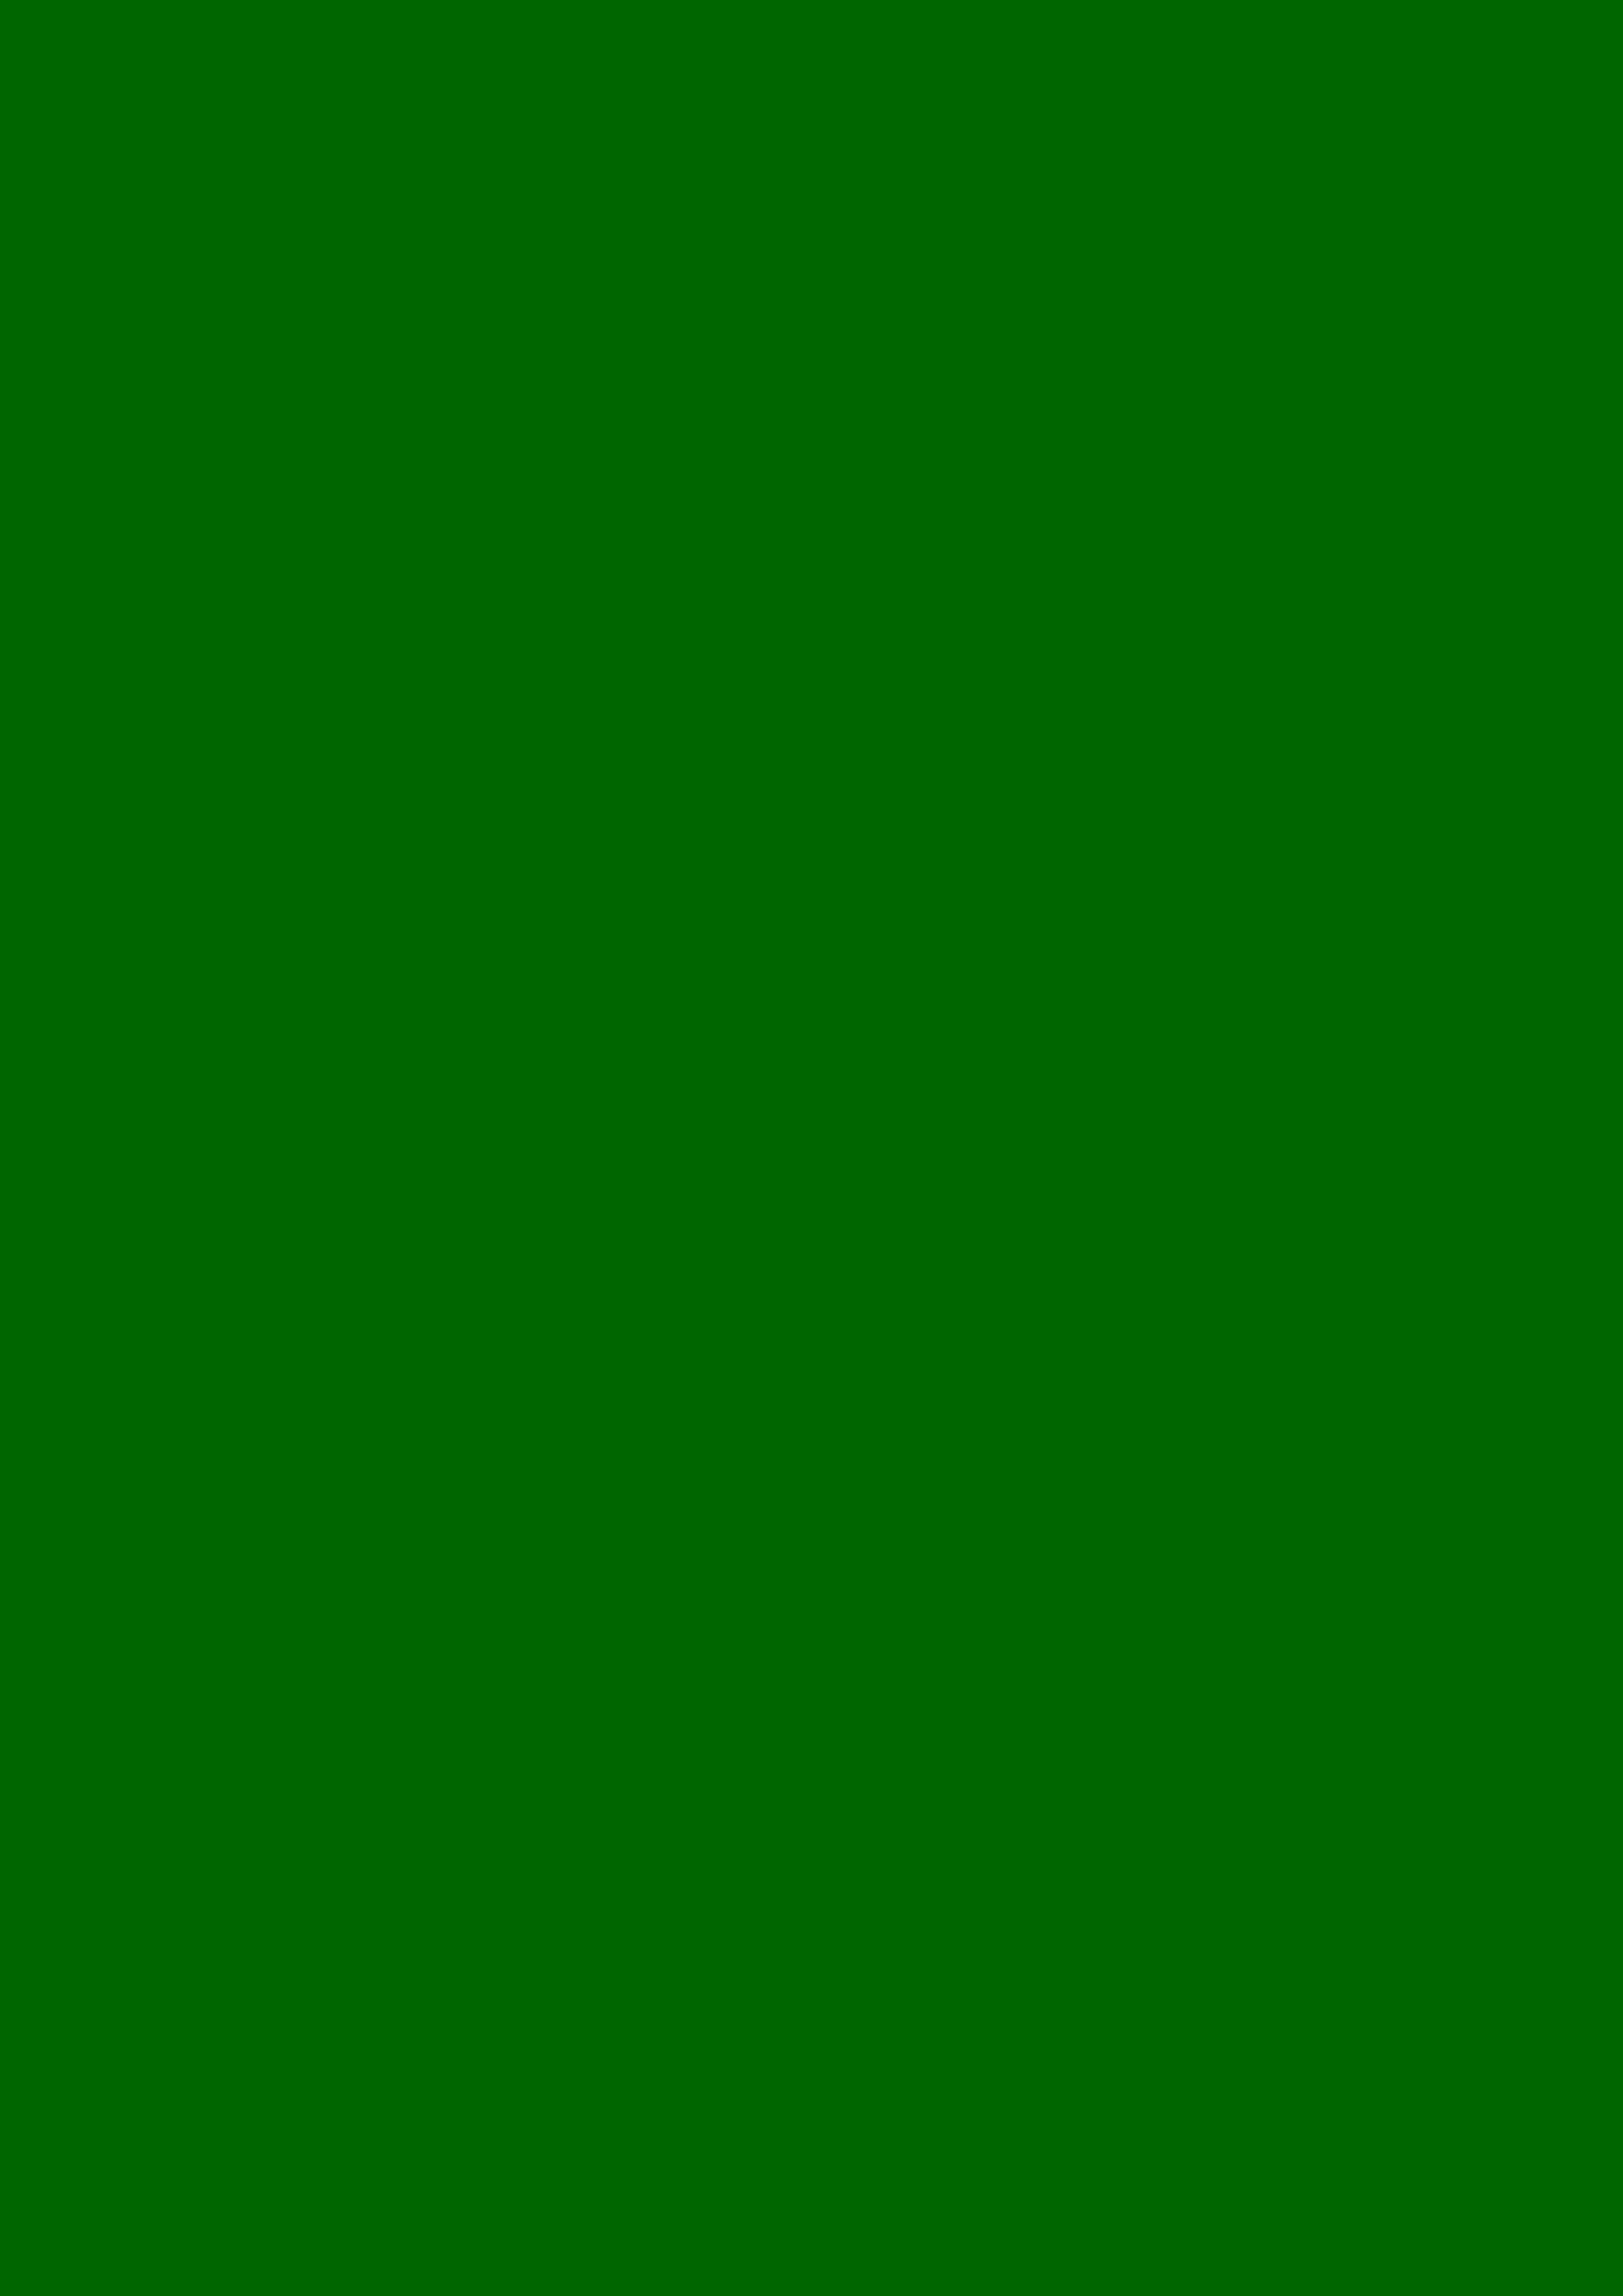 2480x3508 Pakistan Green Solid Color Background